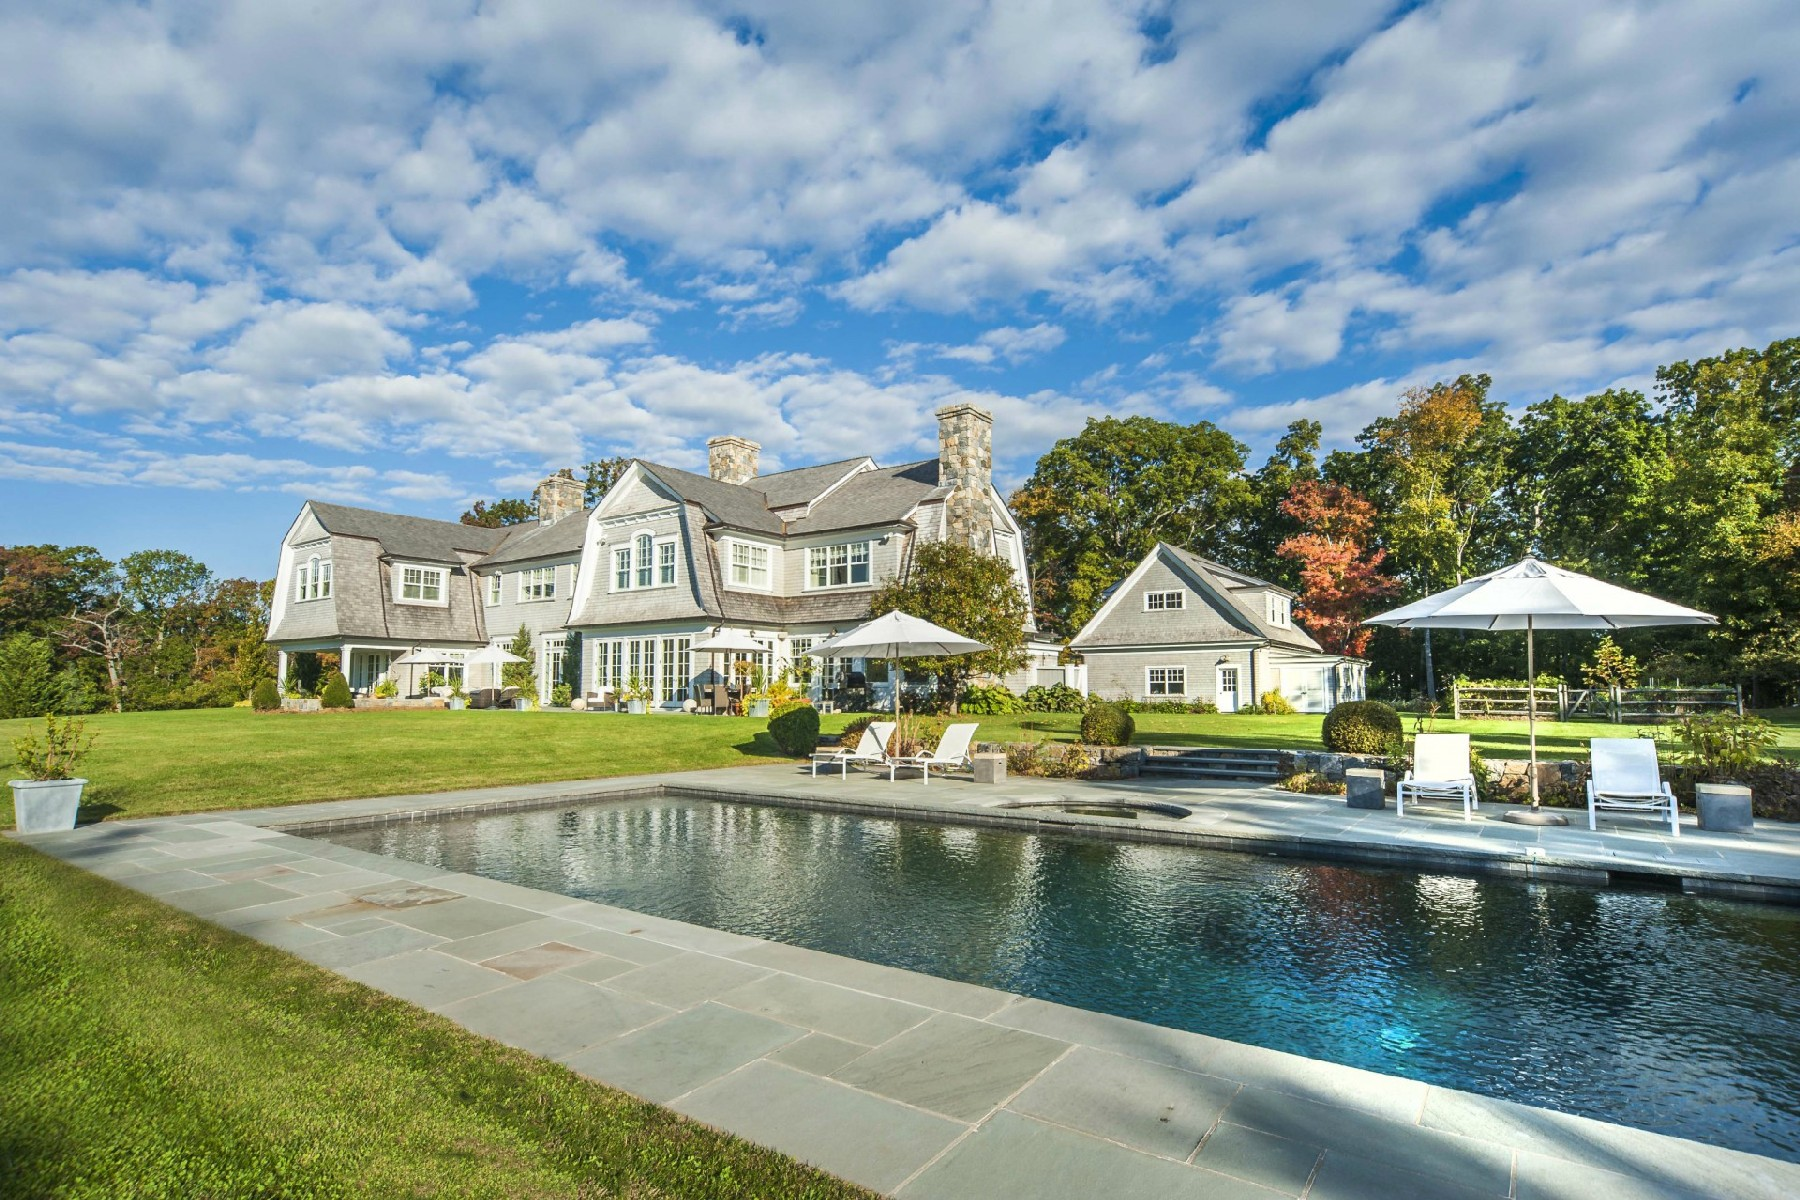 Single Family Home for Sale at Magnificent Estate on 7.1 Acre Island 20 Juniper Road Darien, Connecticut, 06820 United States